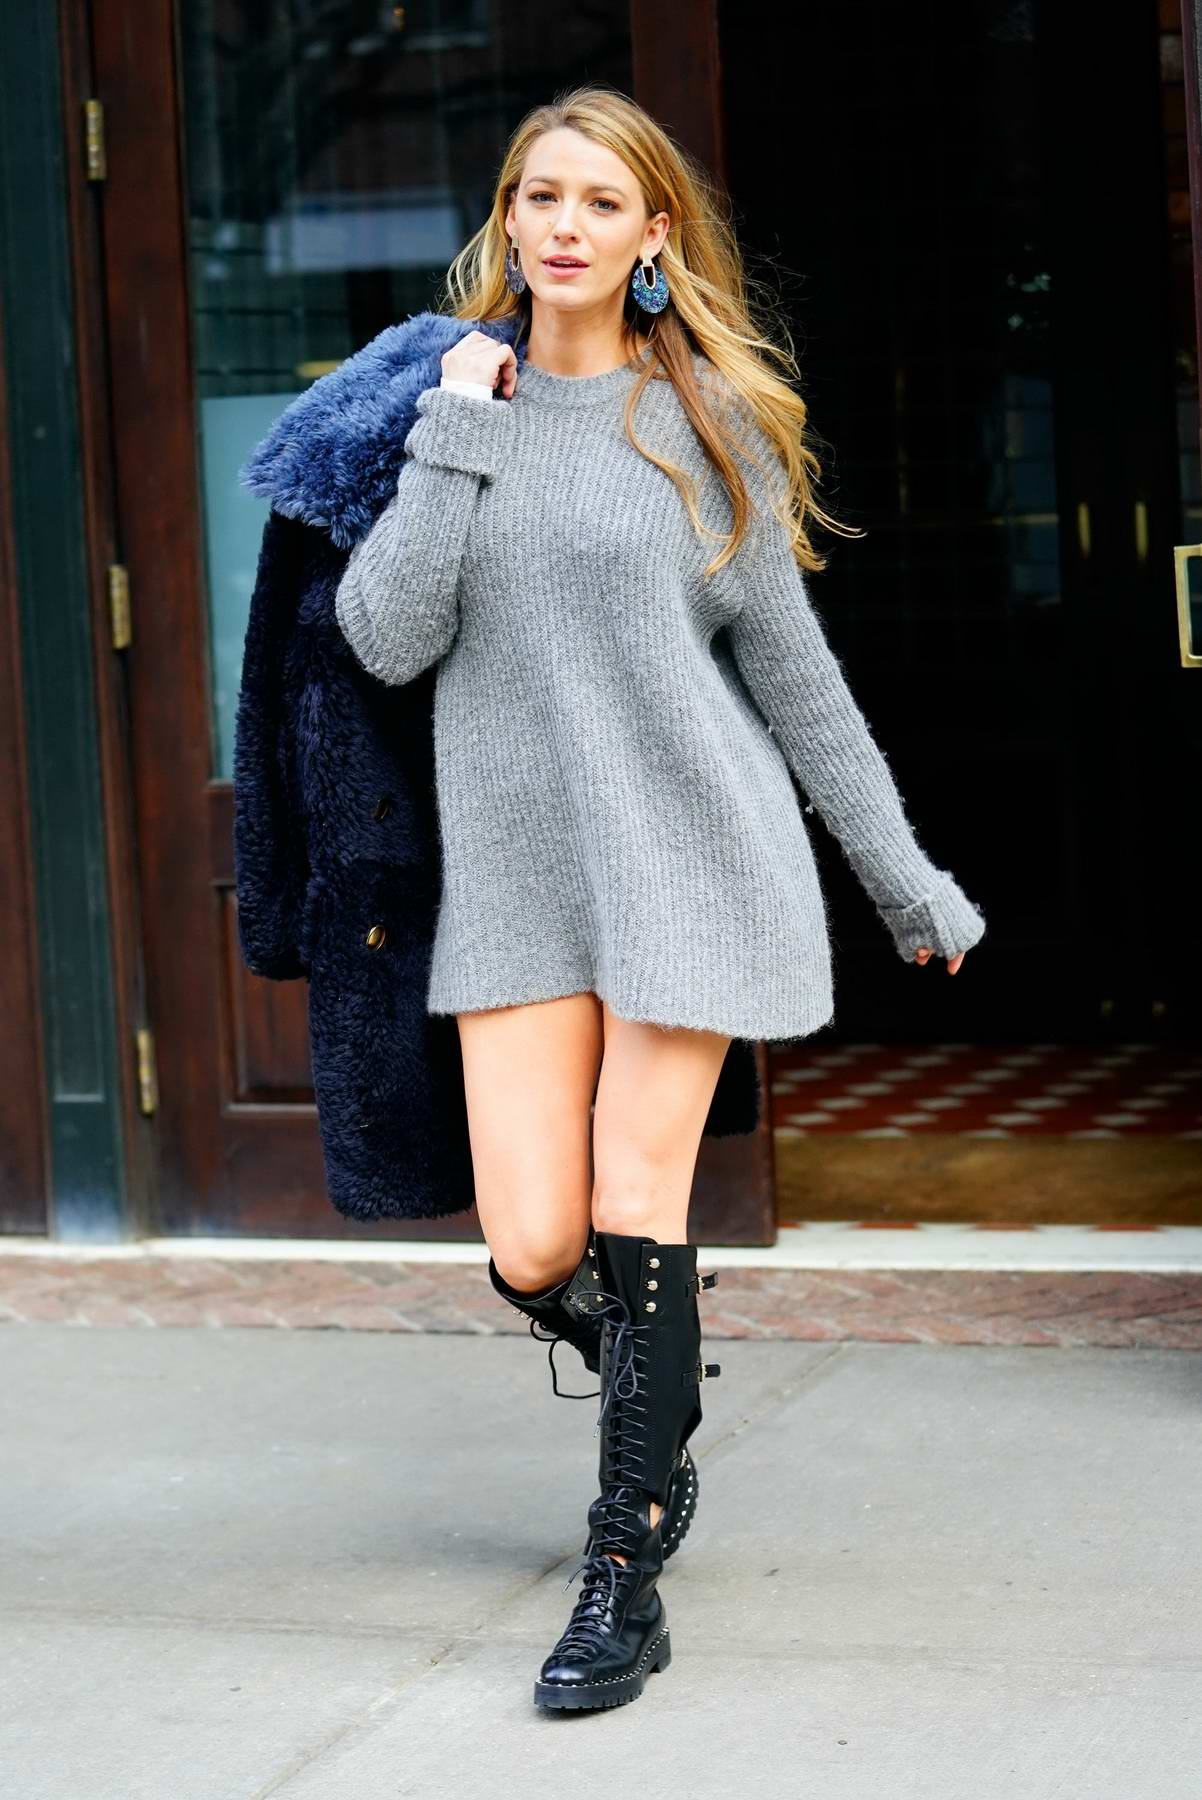 Blake Lively wears a grey sweater dress with kneehigh boots and blue fur coat while out in New